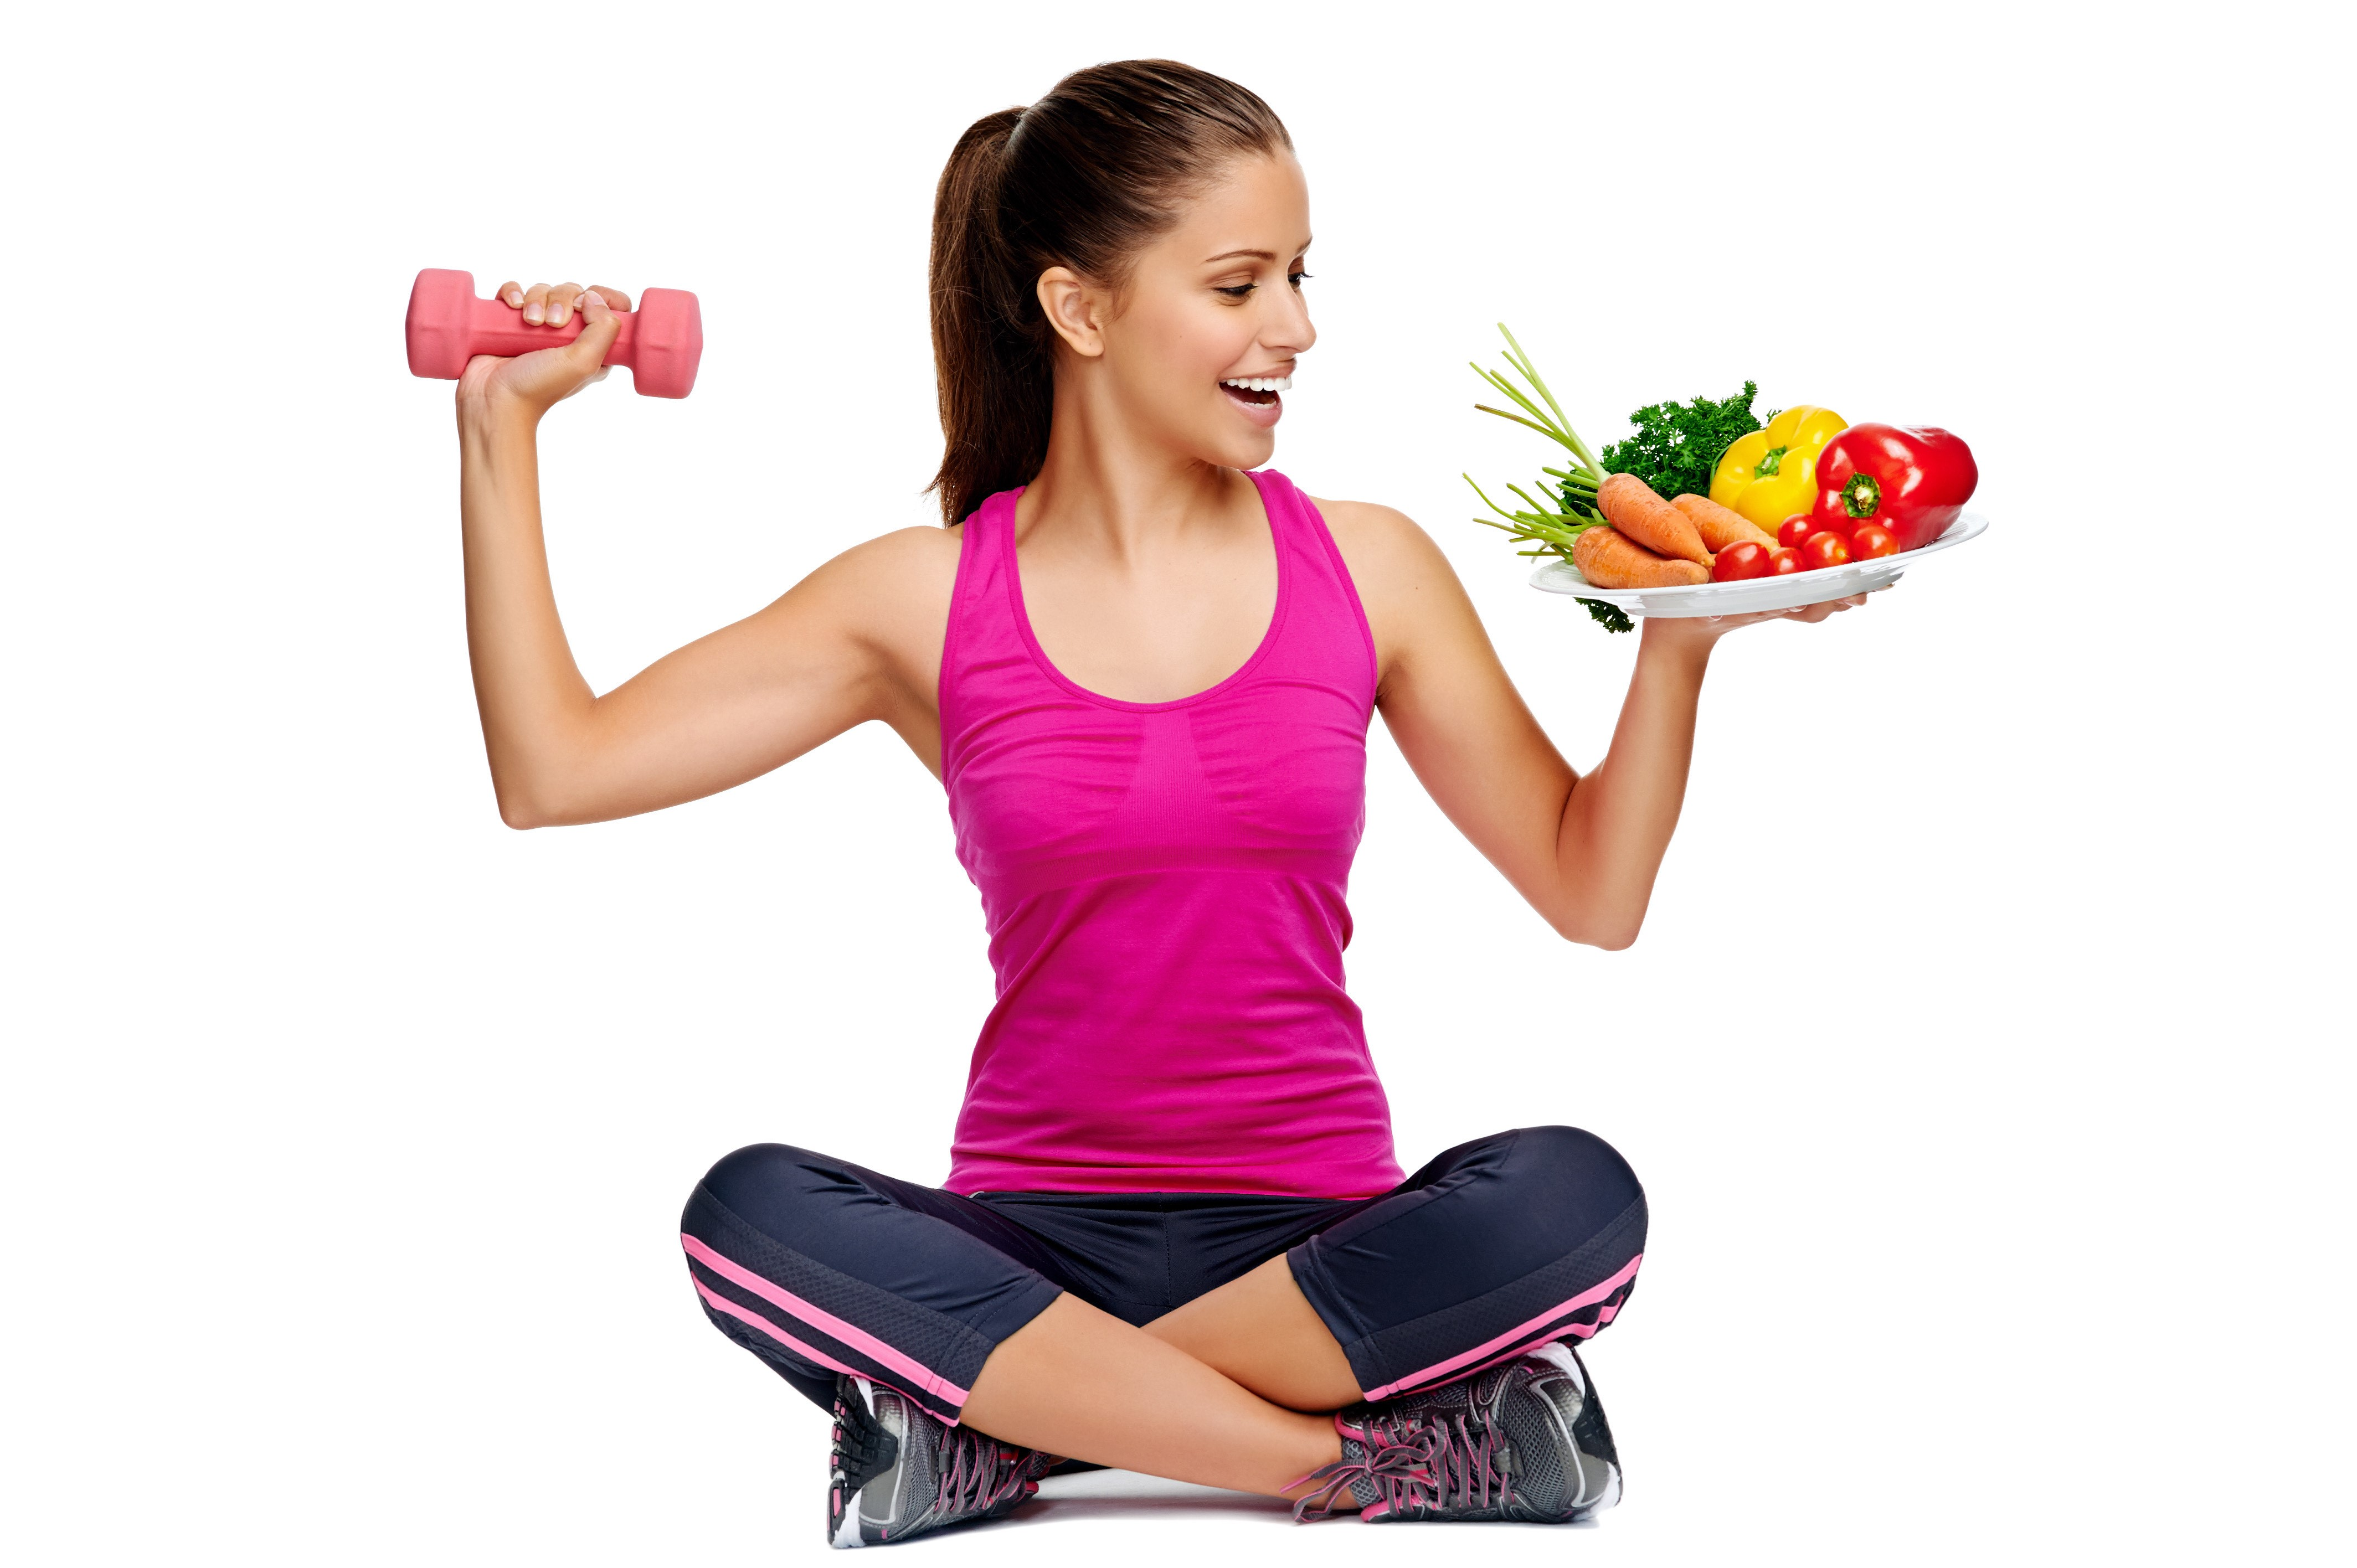 Diet and exercising combination for weight loss